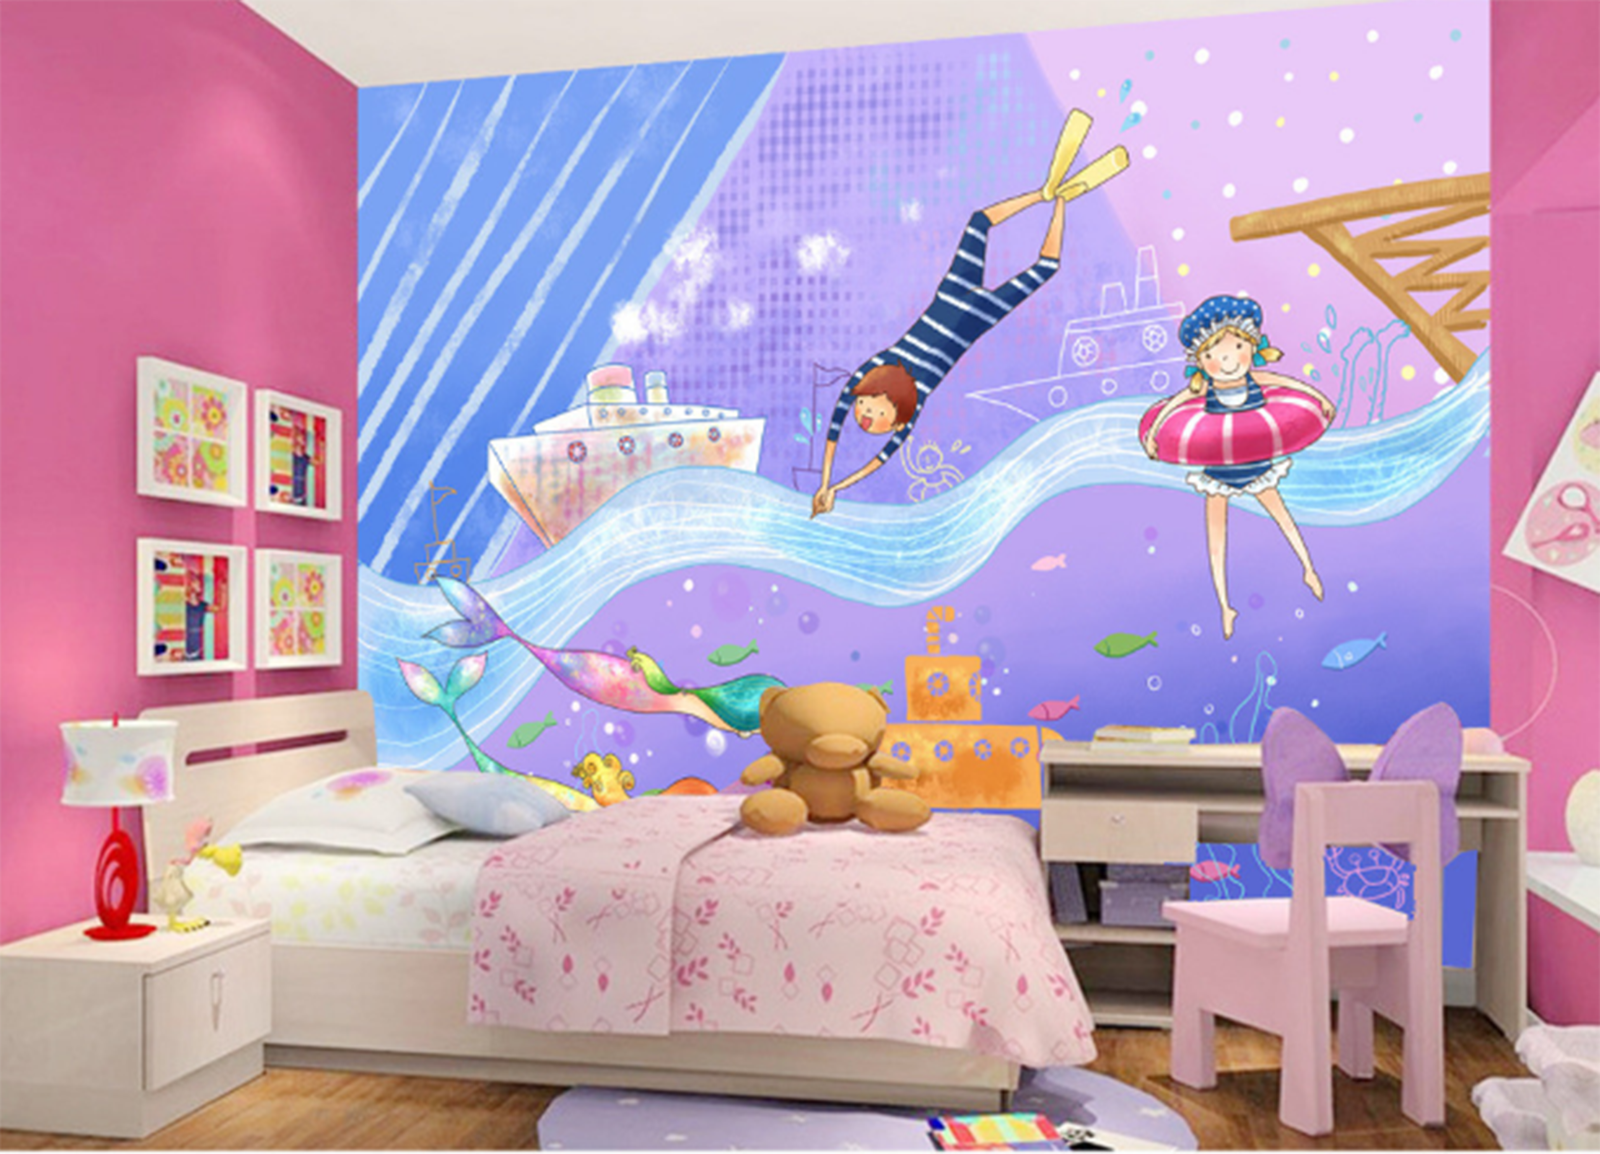 3D Cartoon Waves 737 Wallpaper Mural Paper Wall Print Wallpaper Murals UK Kyra